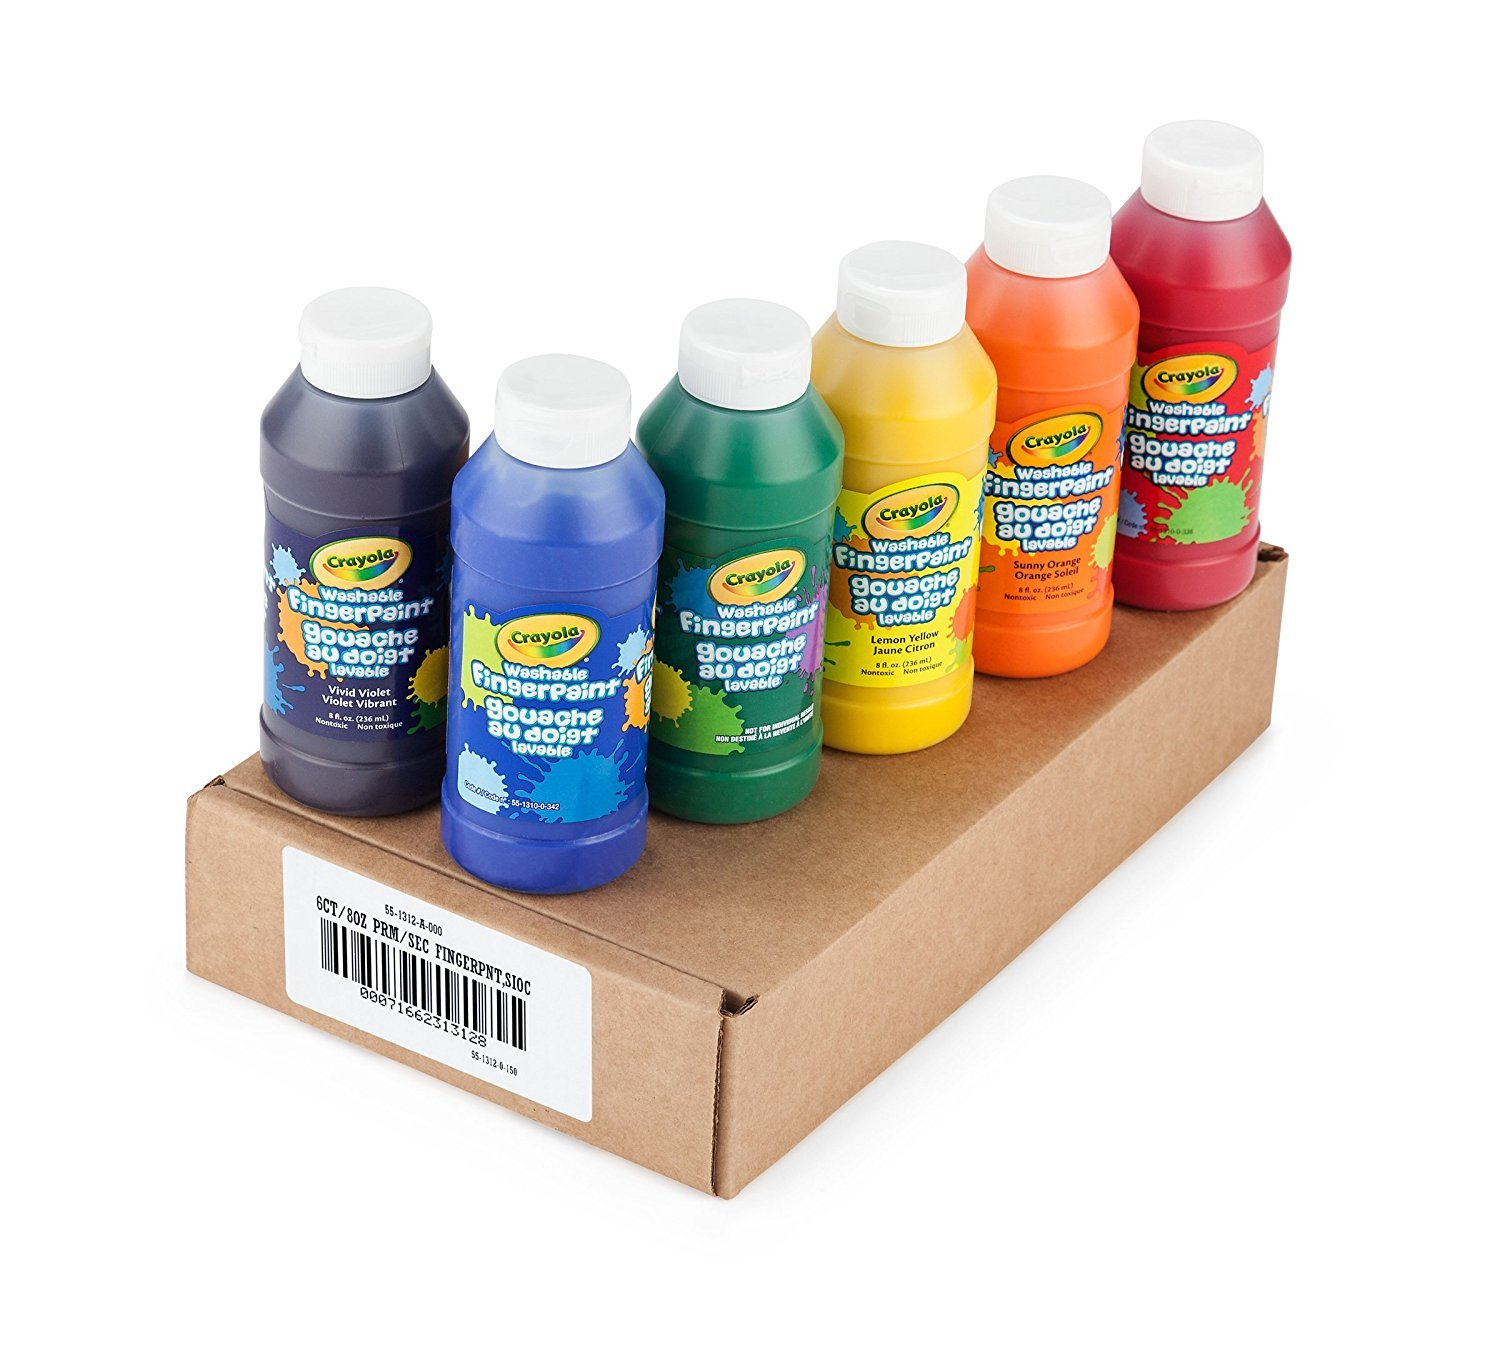 Crayola Washable FingerPaints, 6 Count 8 oz. by Crayola (Image #2)